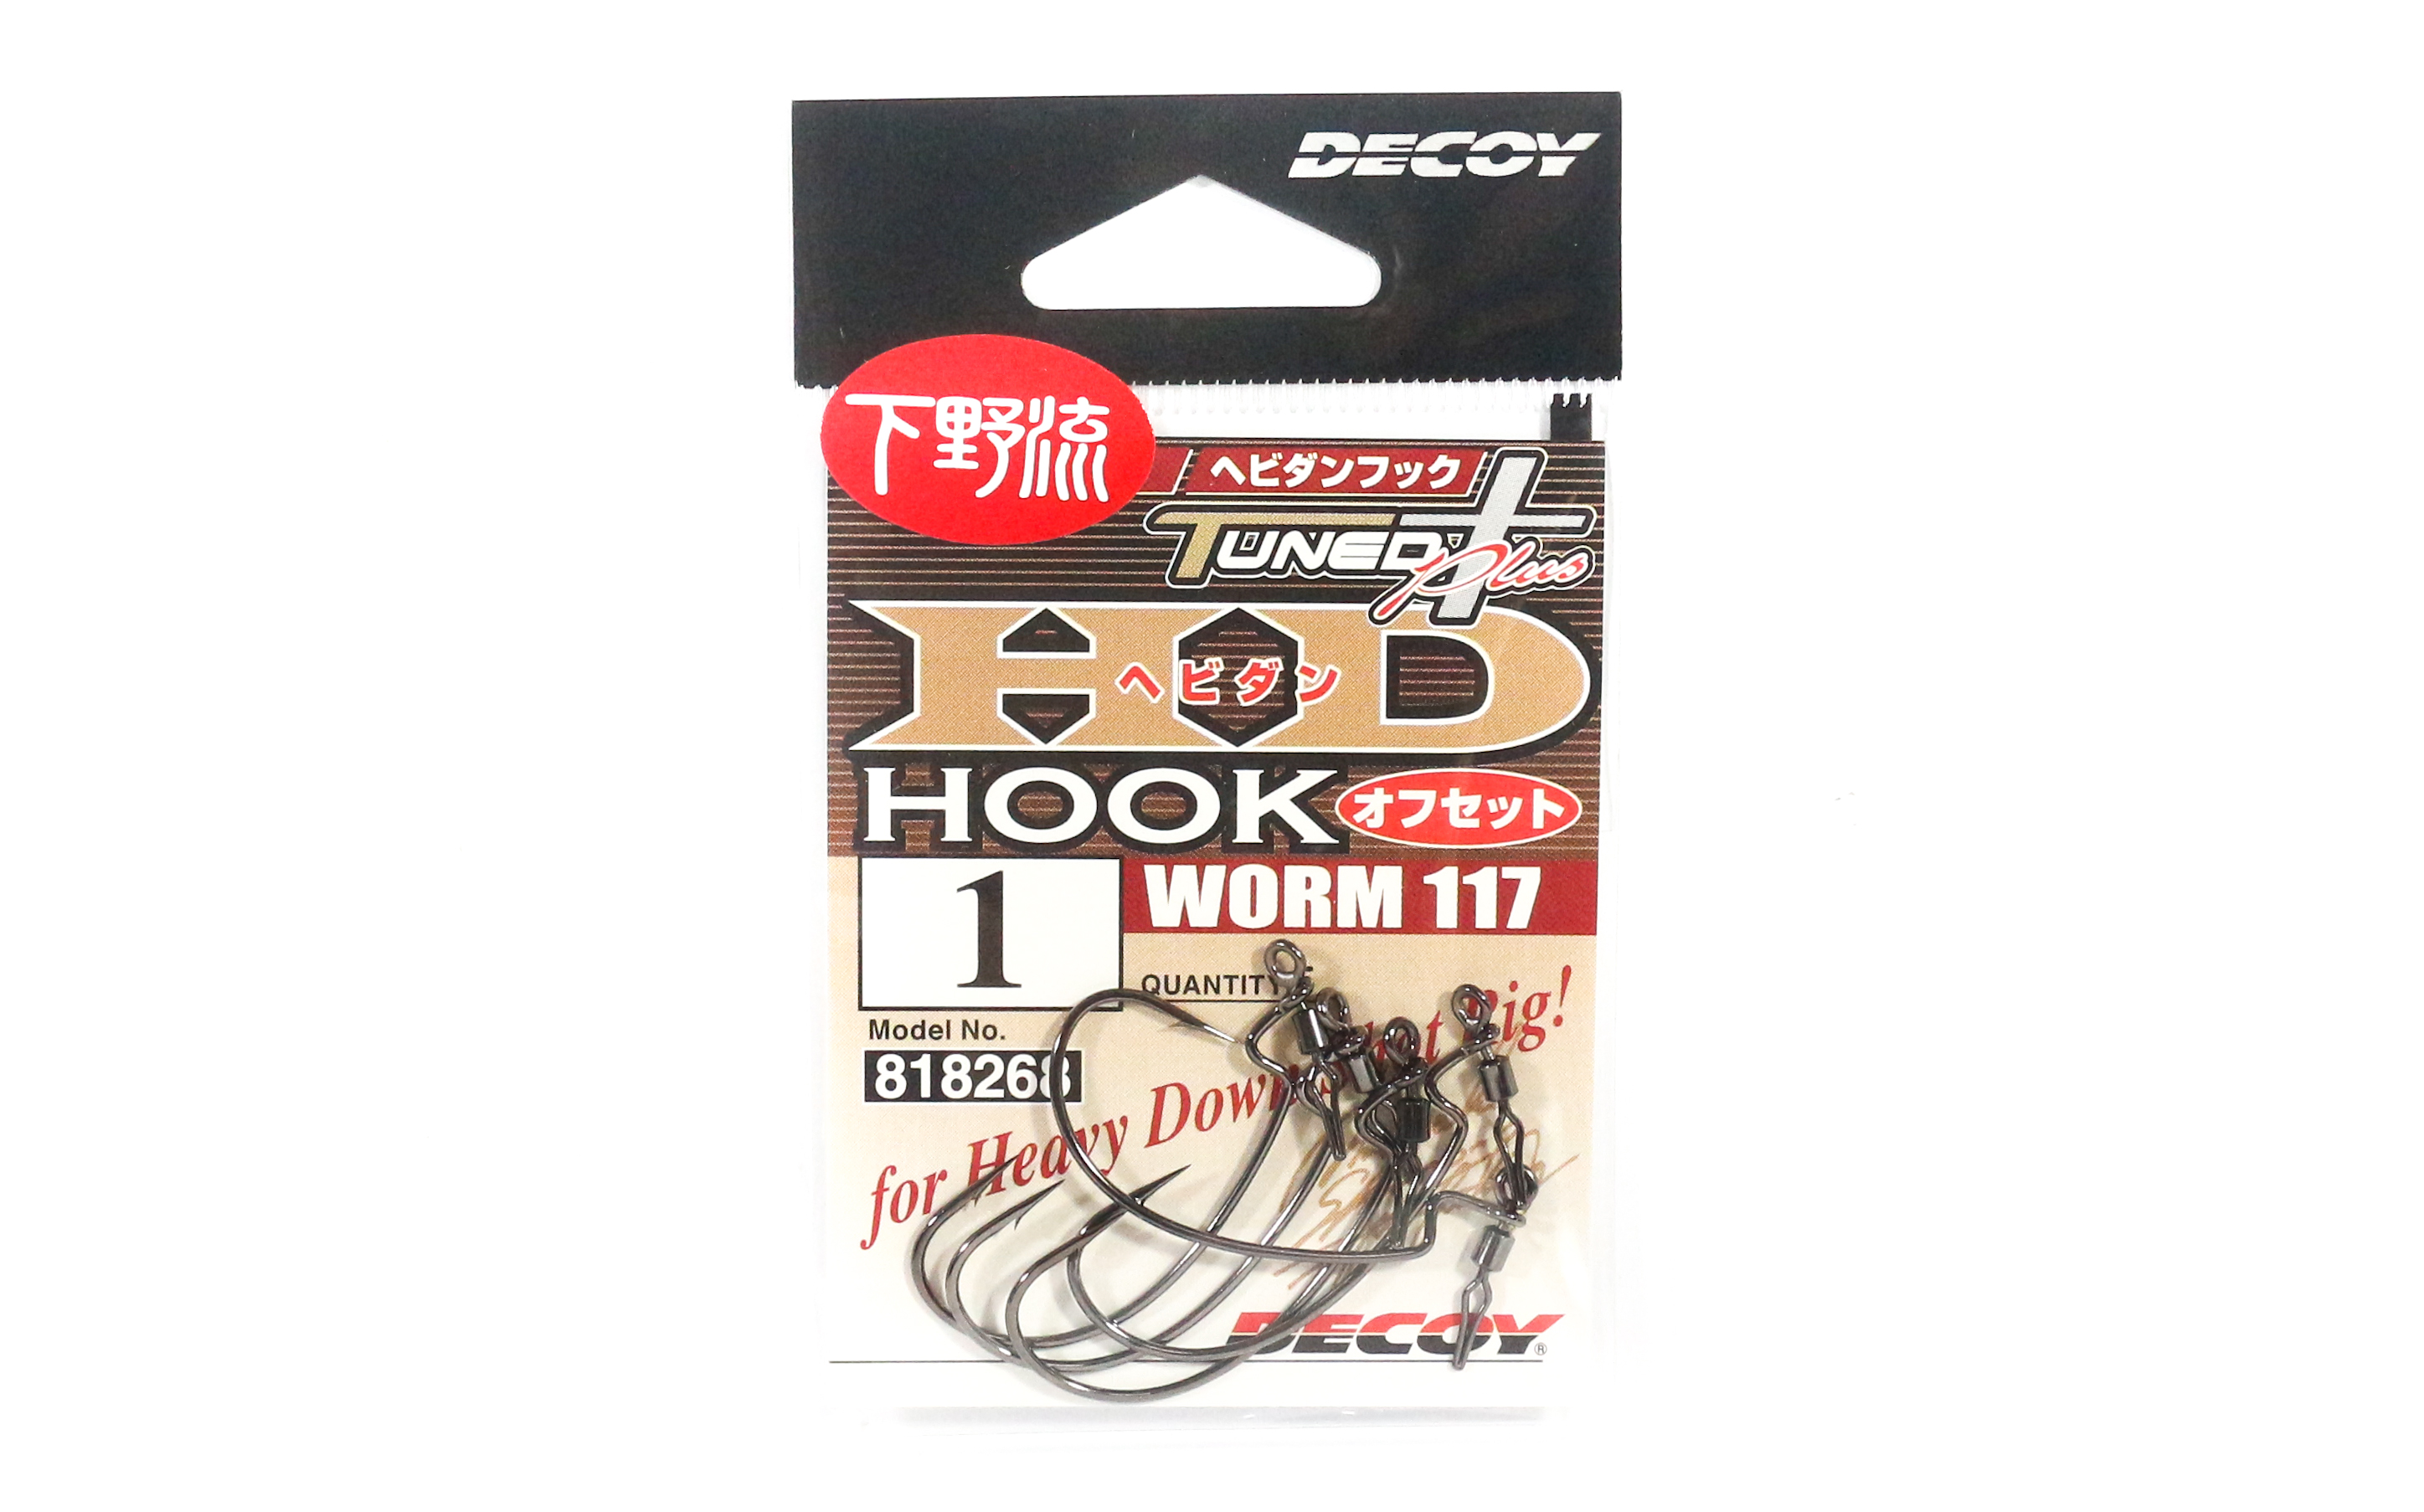 Decoy Worm 117HD Heavy Down Shot Size 1 (8268)